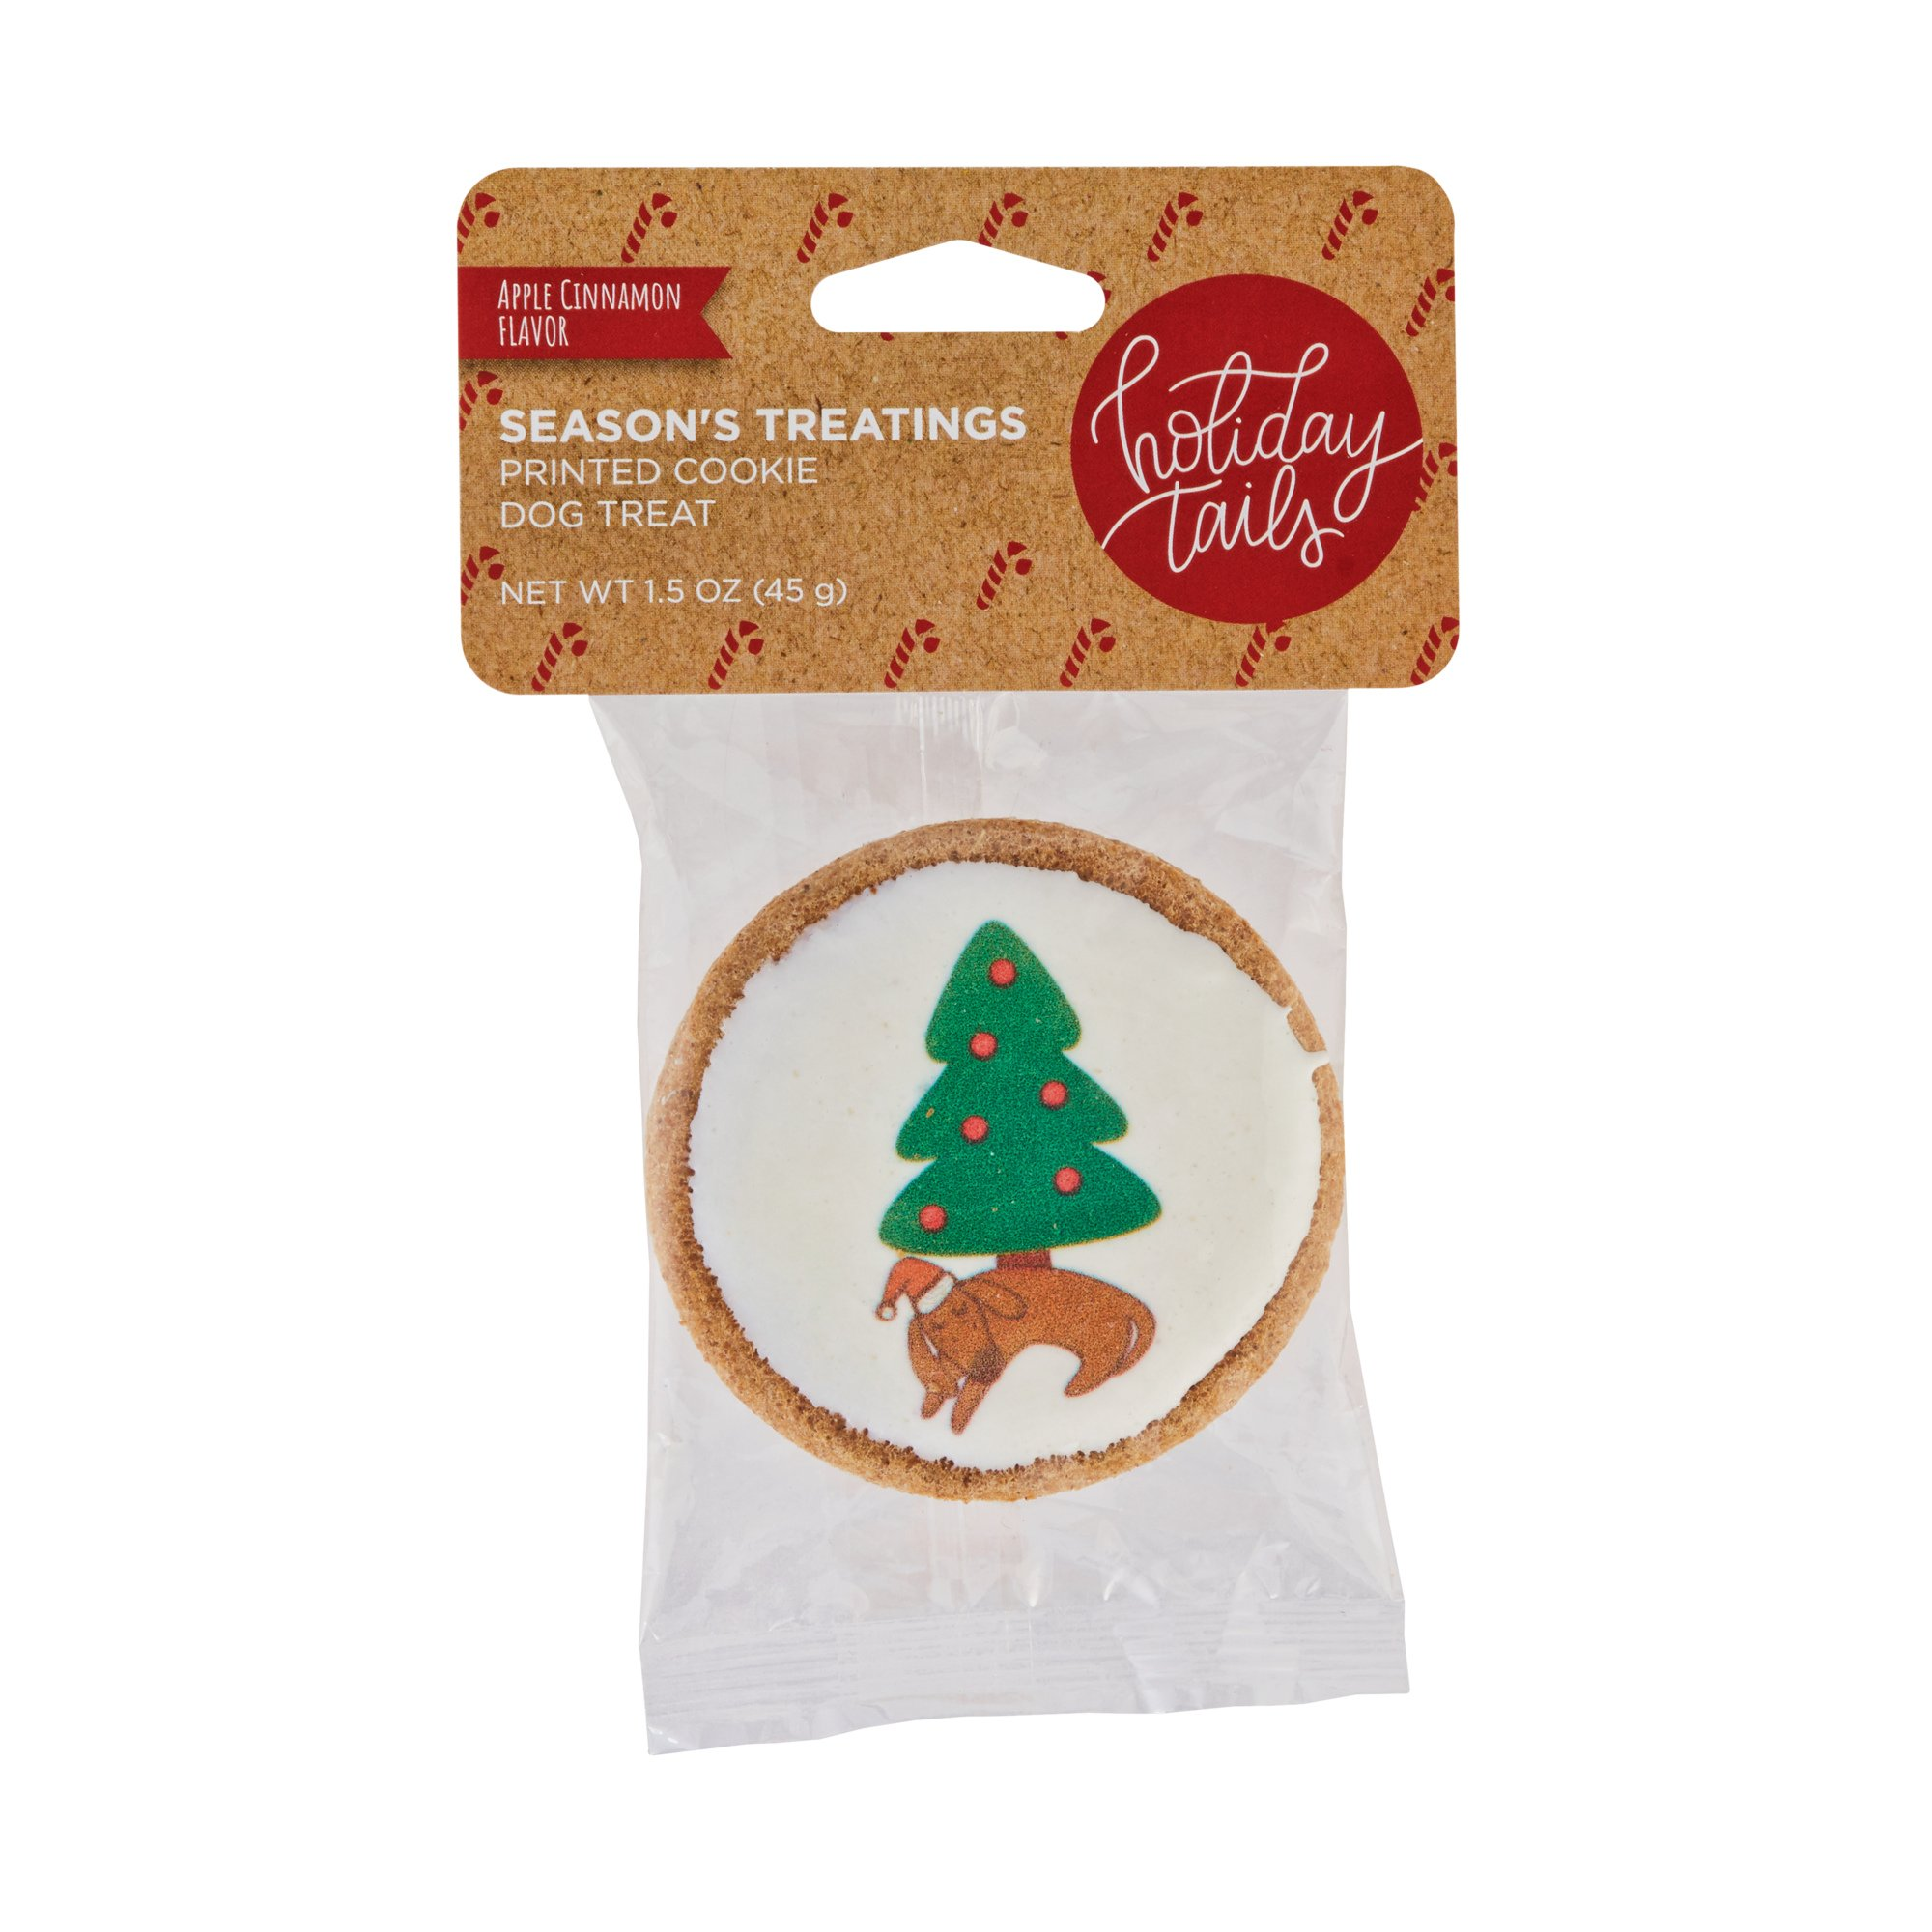 Holiday Tails Apple Cinnamon Sweet Christmas Dreams Cookie Dog Treat ...